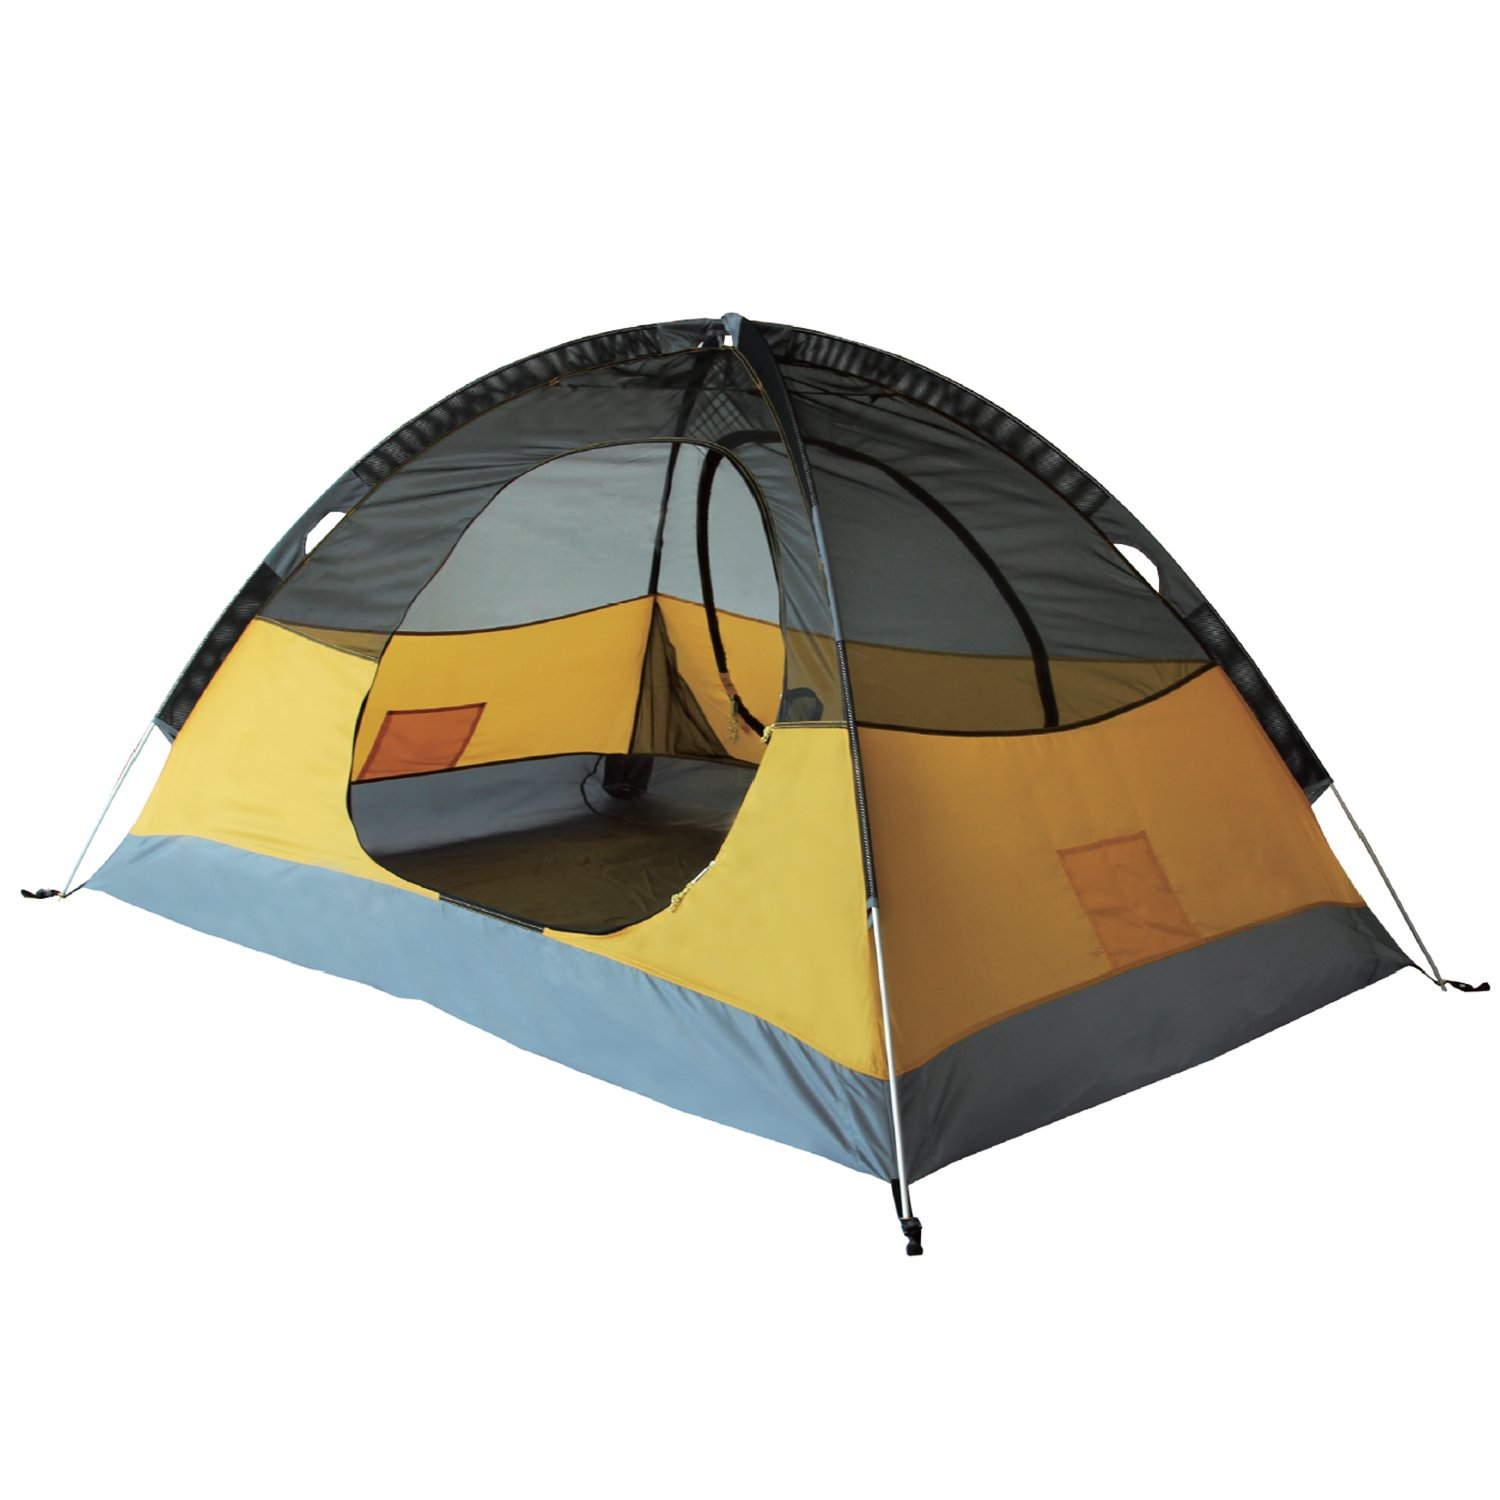 KingCamp Double Layer 2 Person Portable Water Resistant 5000mm Backpacking Tent (Orange)